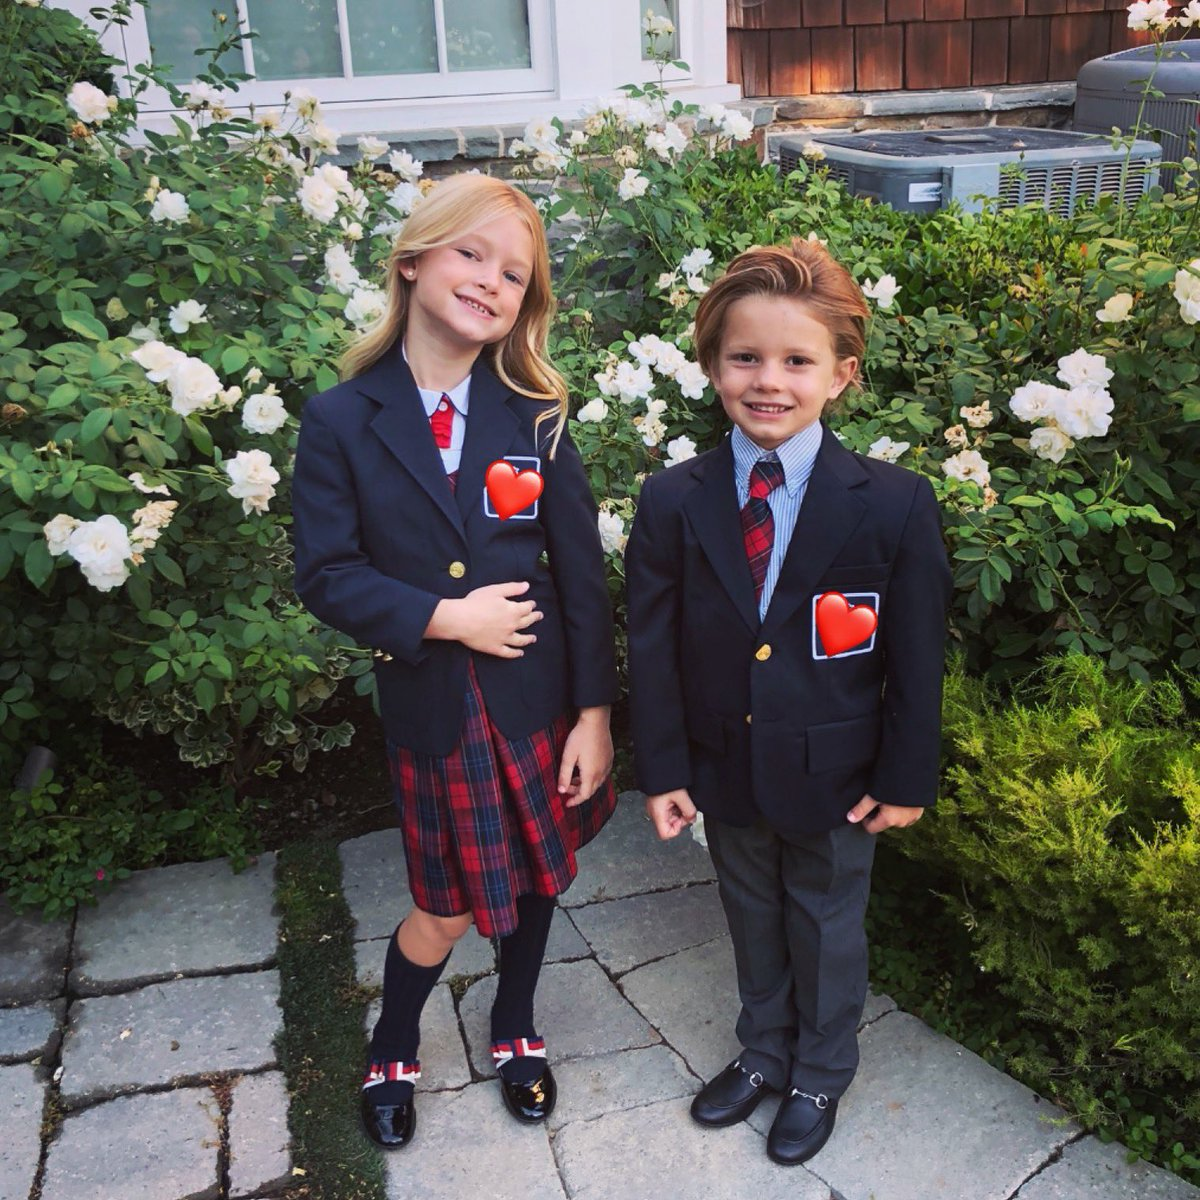 Picture Day Perfect #MAXIDREW #ACEKNUTE https://t.co/o009bZE4Rw